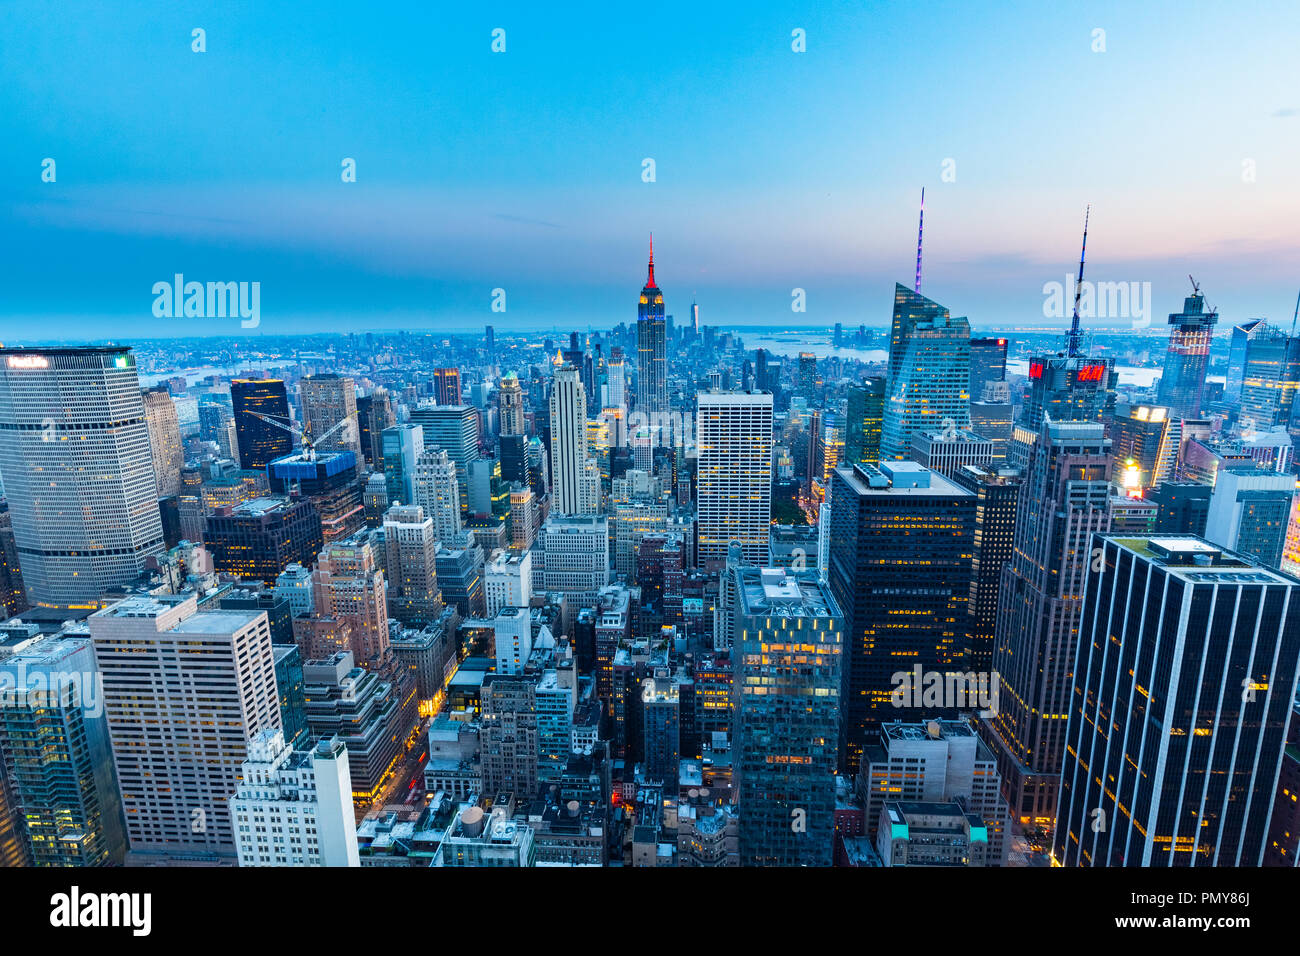 Manhattan view from Top of the Rock - Rockefeller Center - New York - Stock Image